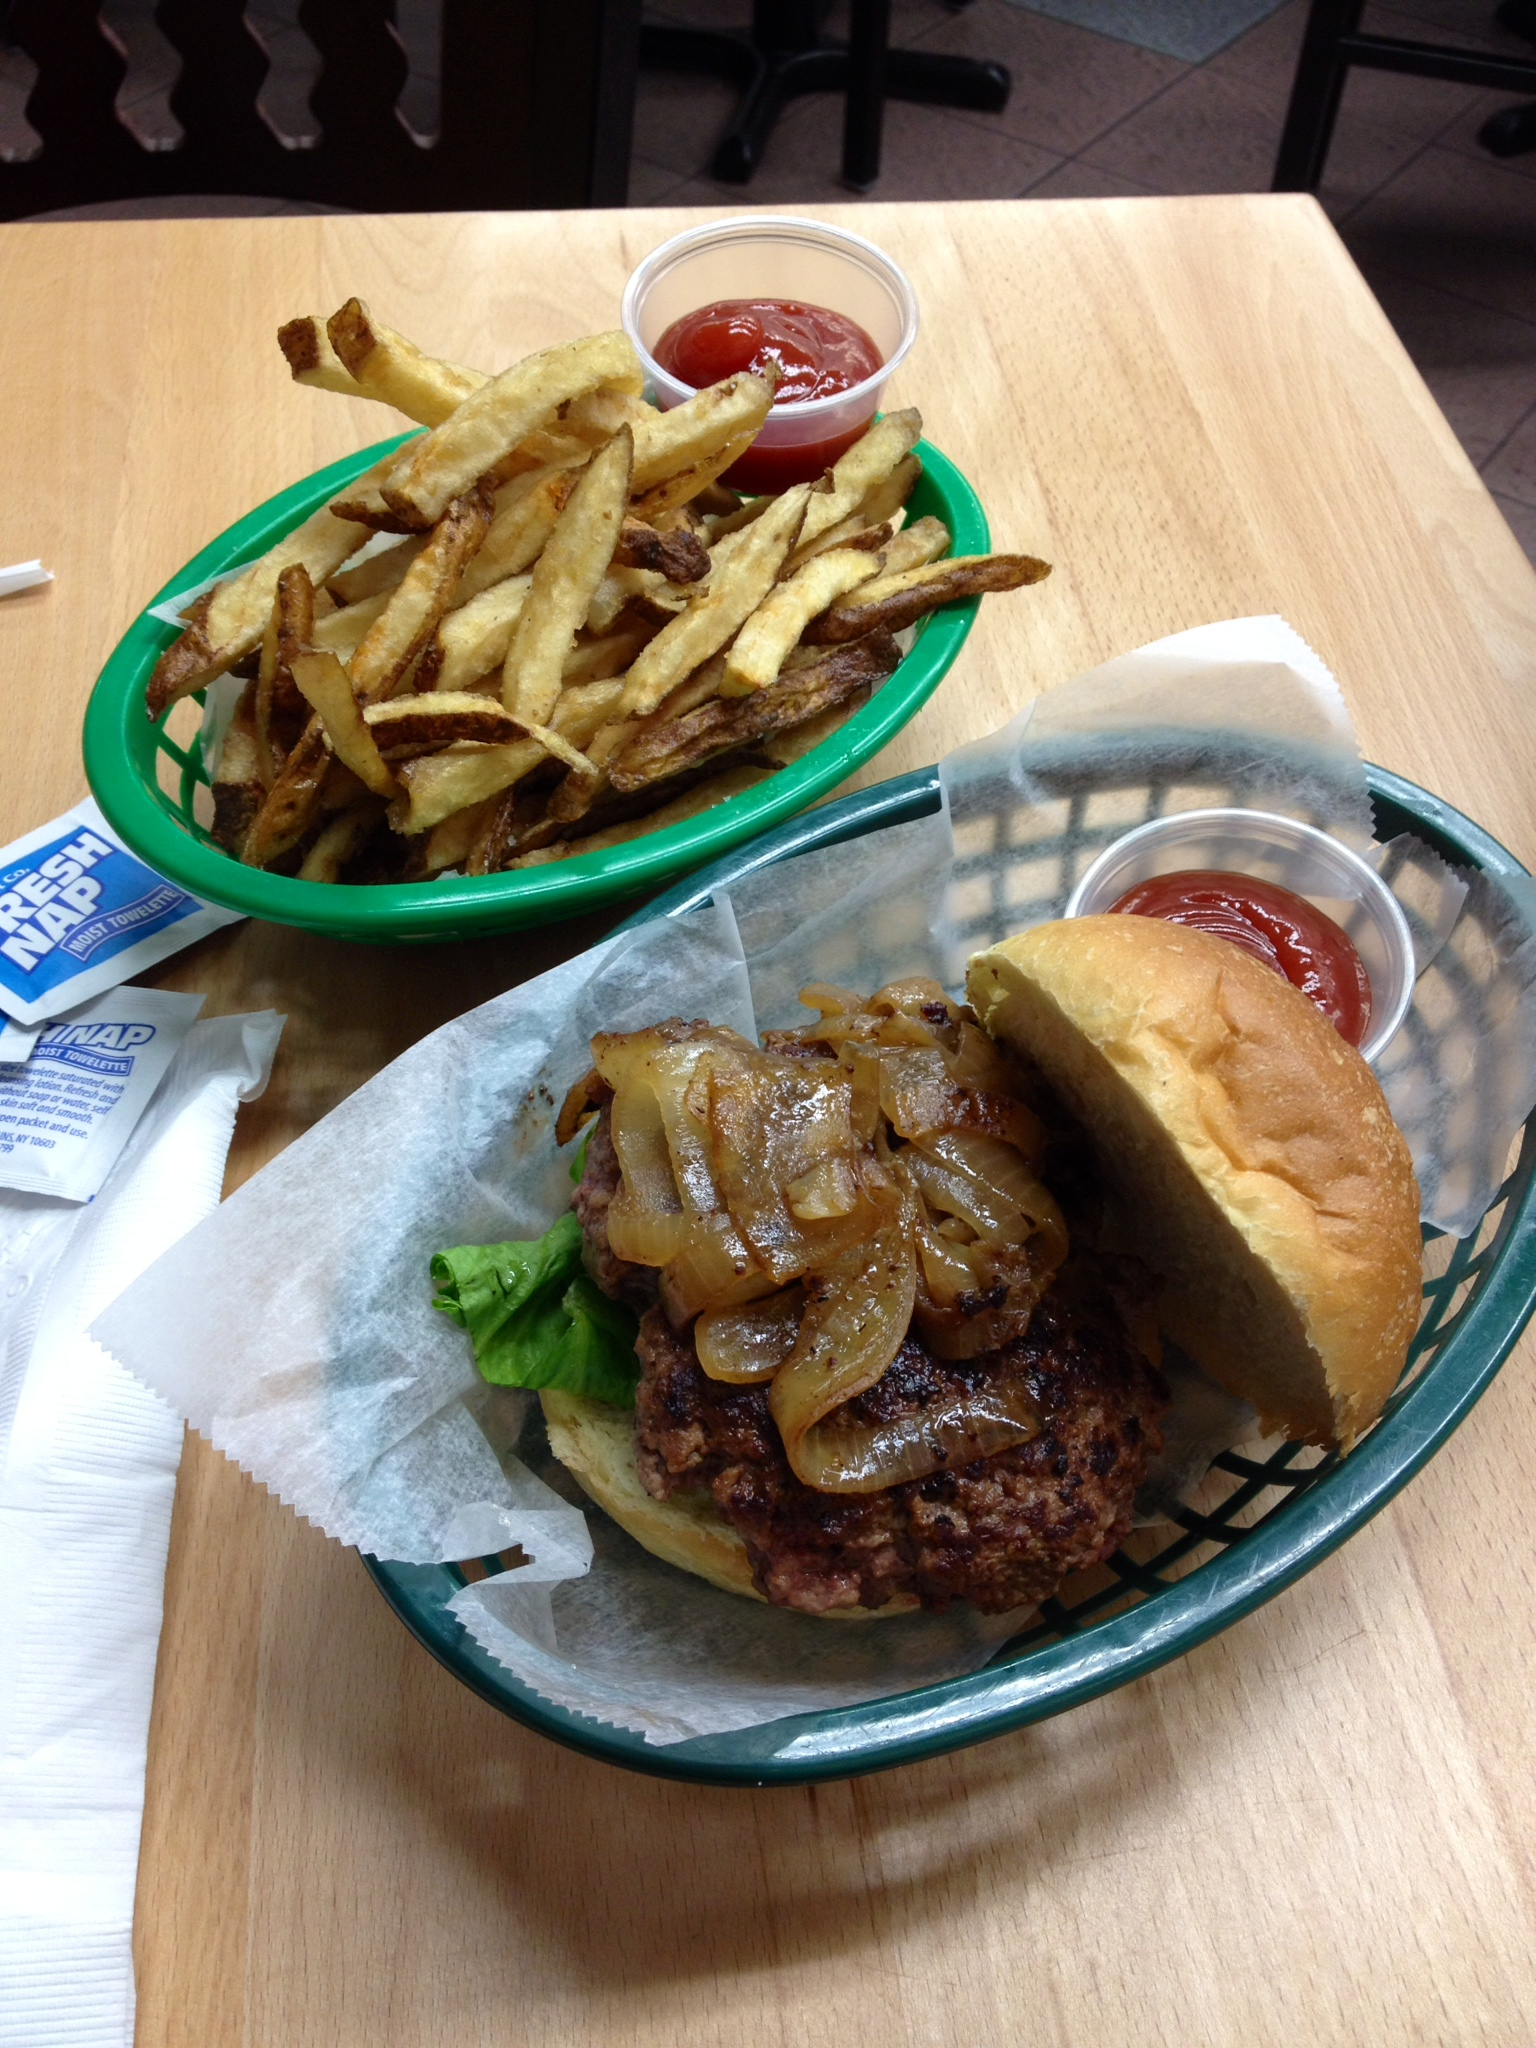 Burger and Fries, butcher shop style!